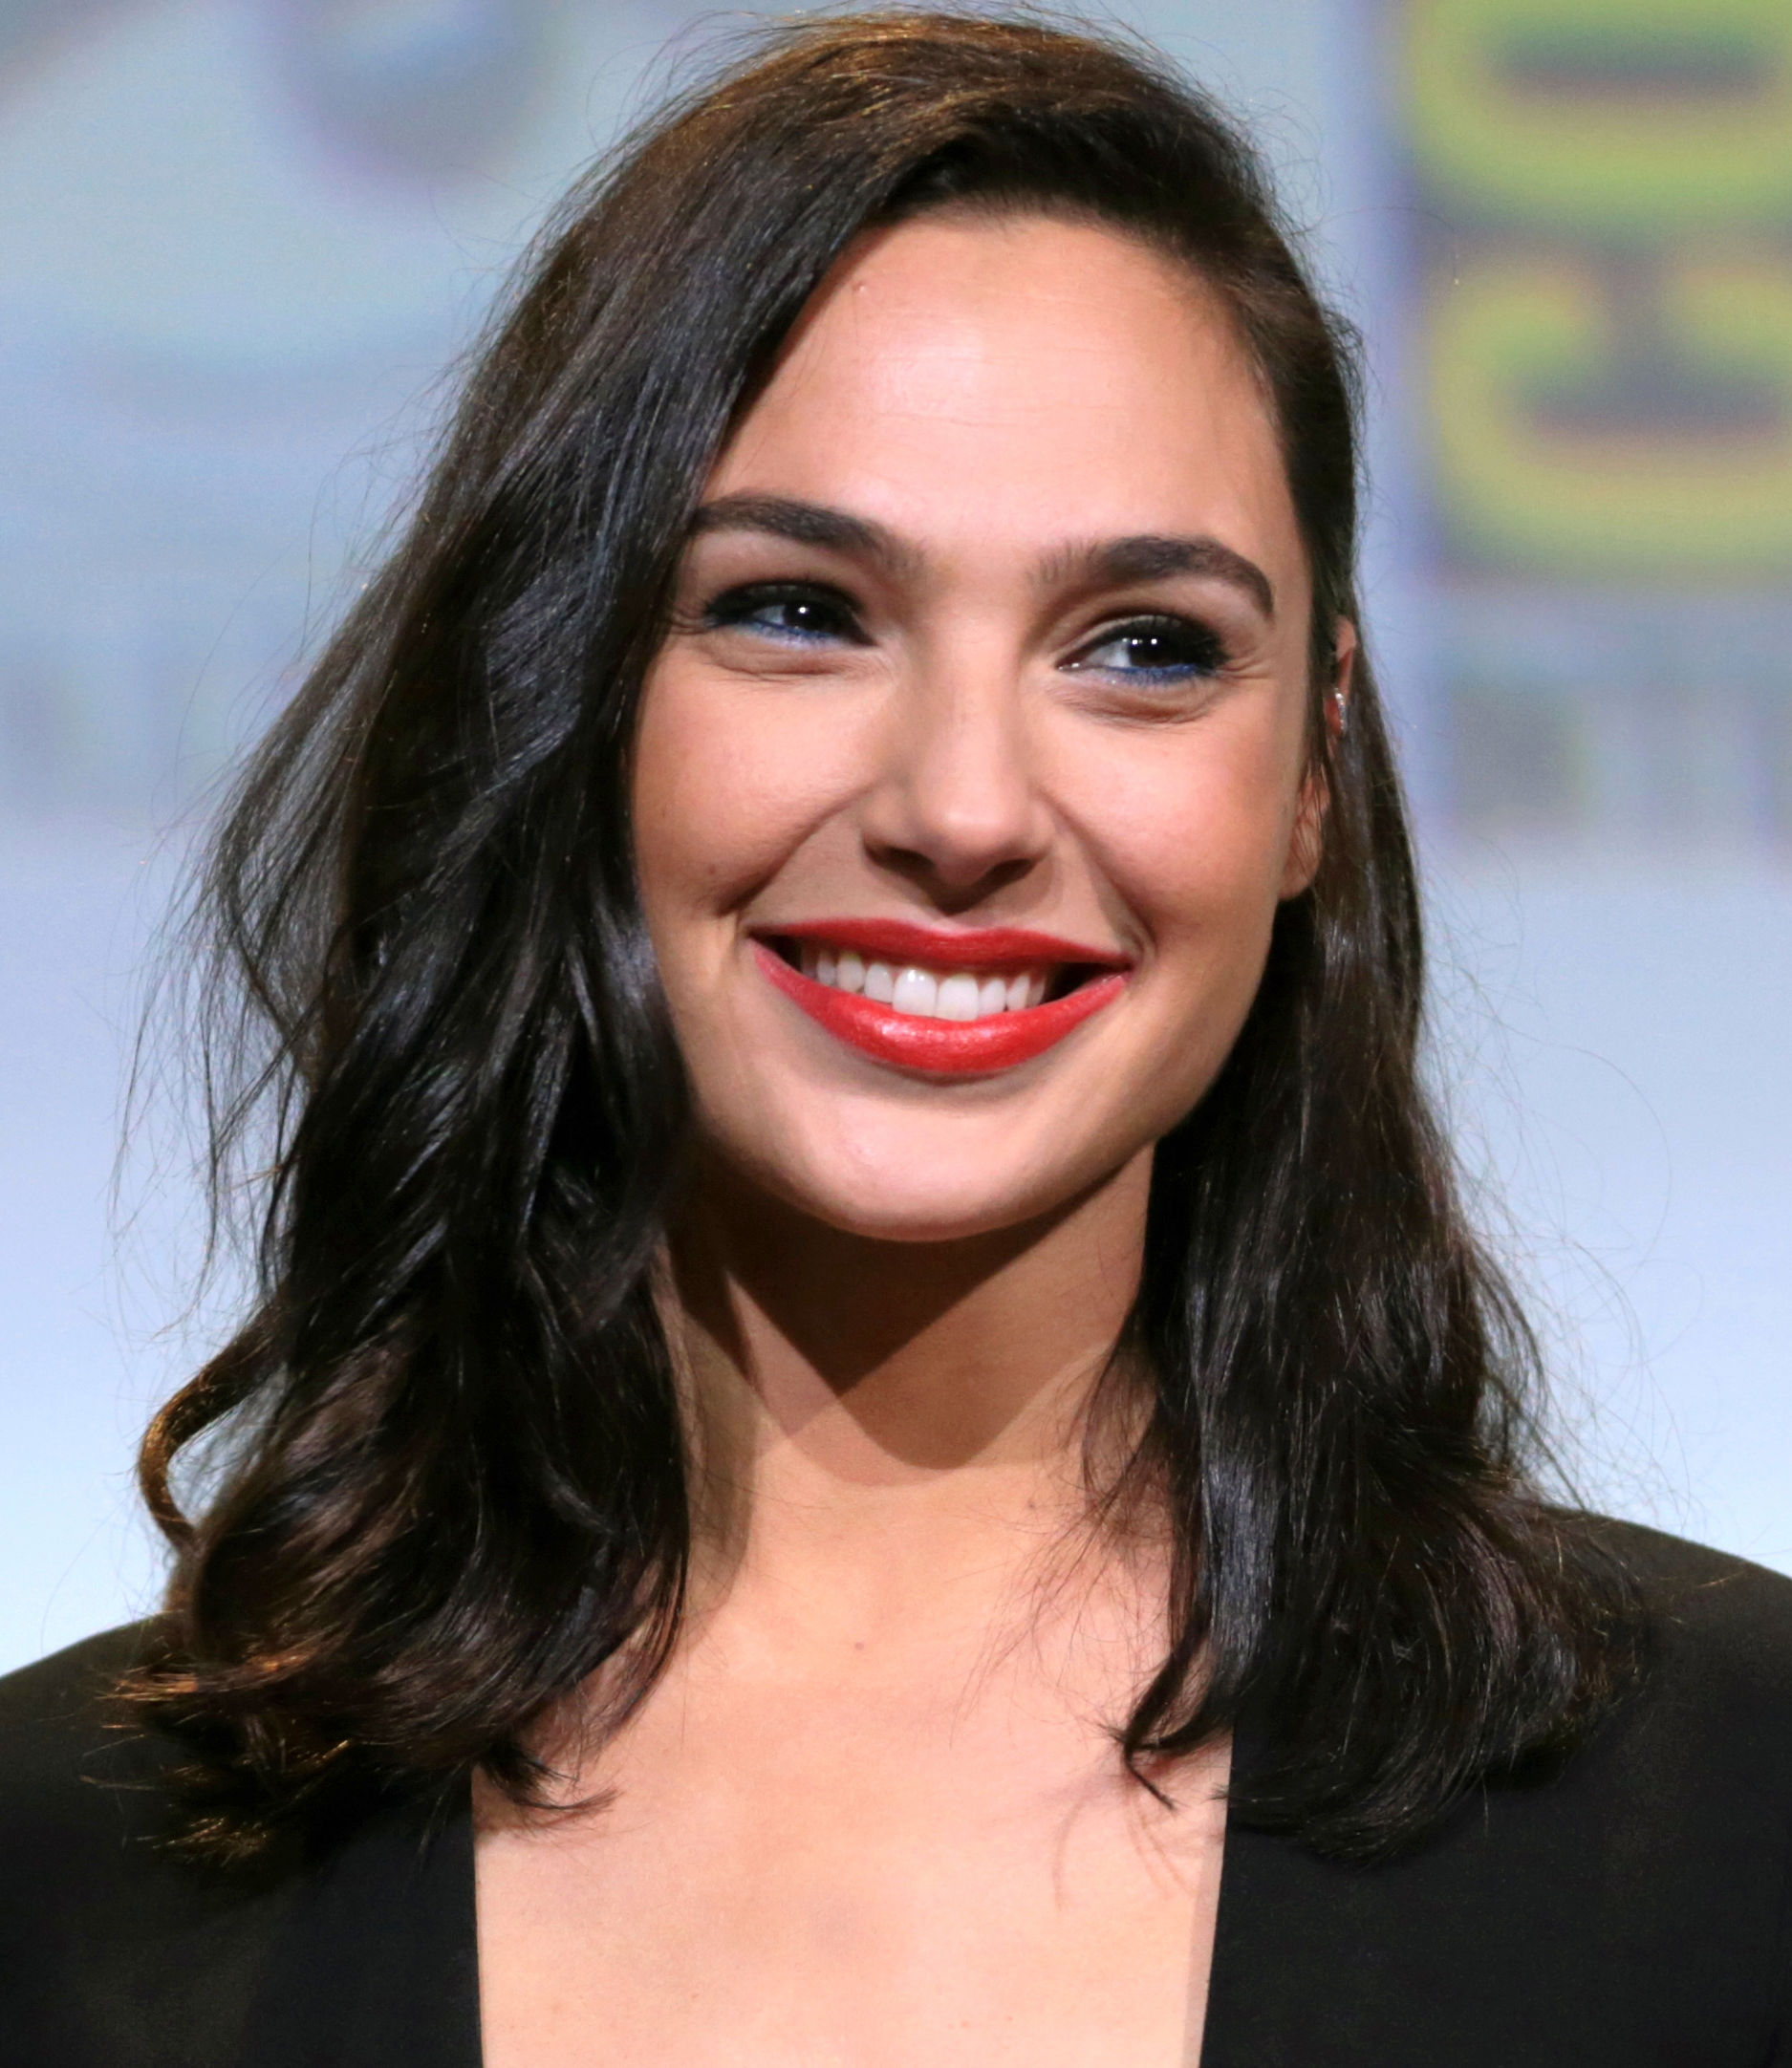 Gal Gadot - Gal Gadot Net Worth, Pics, Wallpapers, Career and Biography